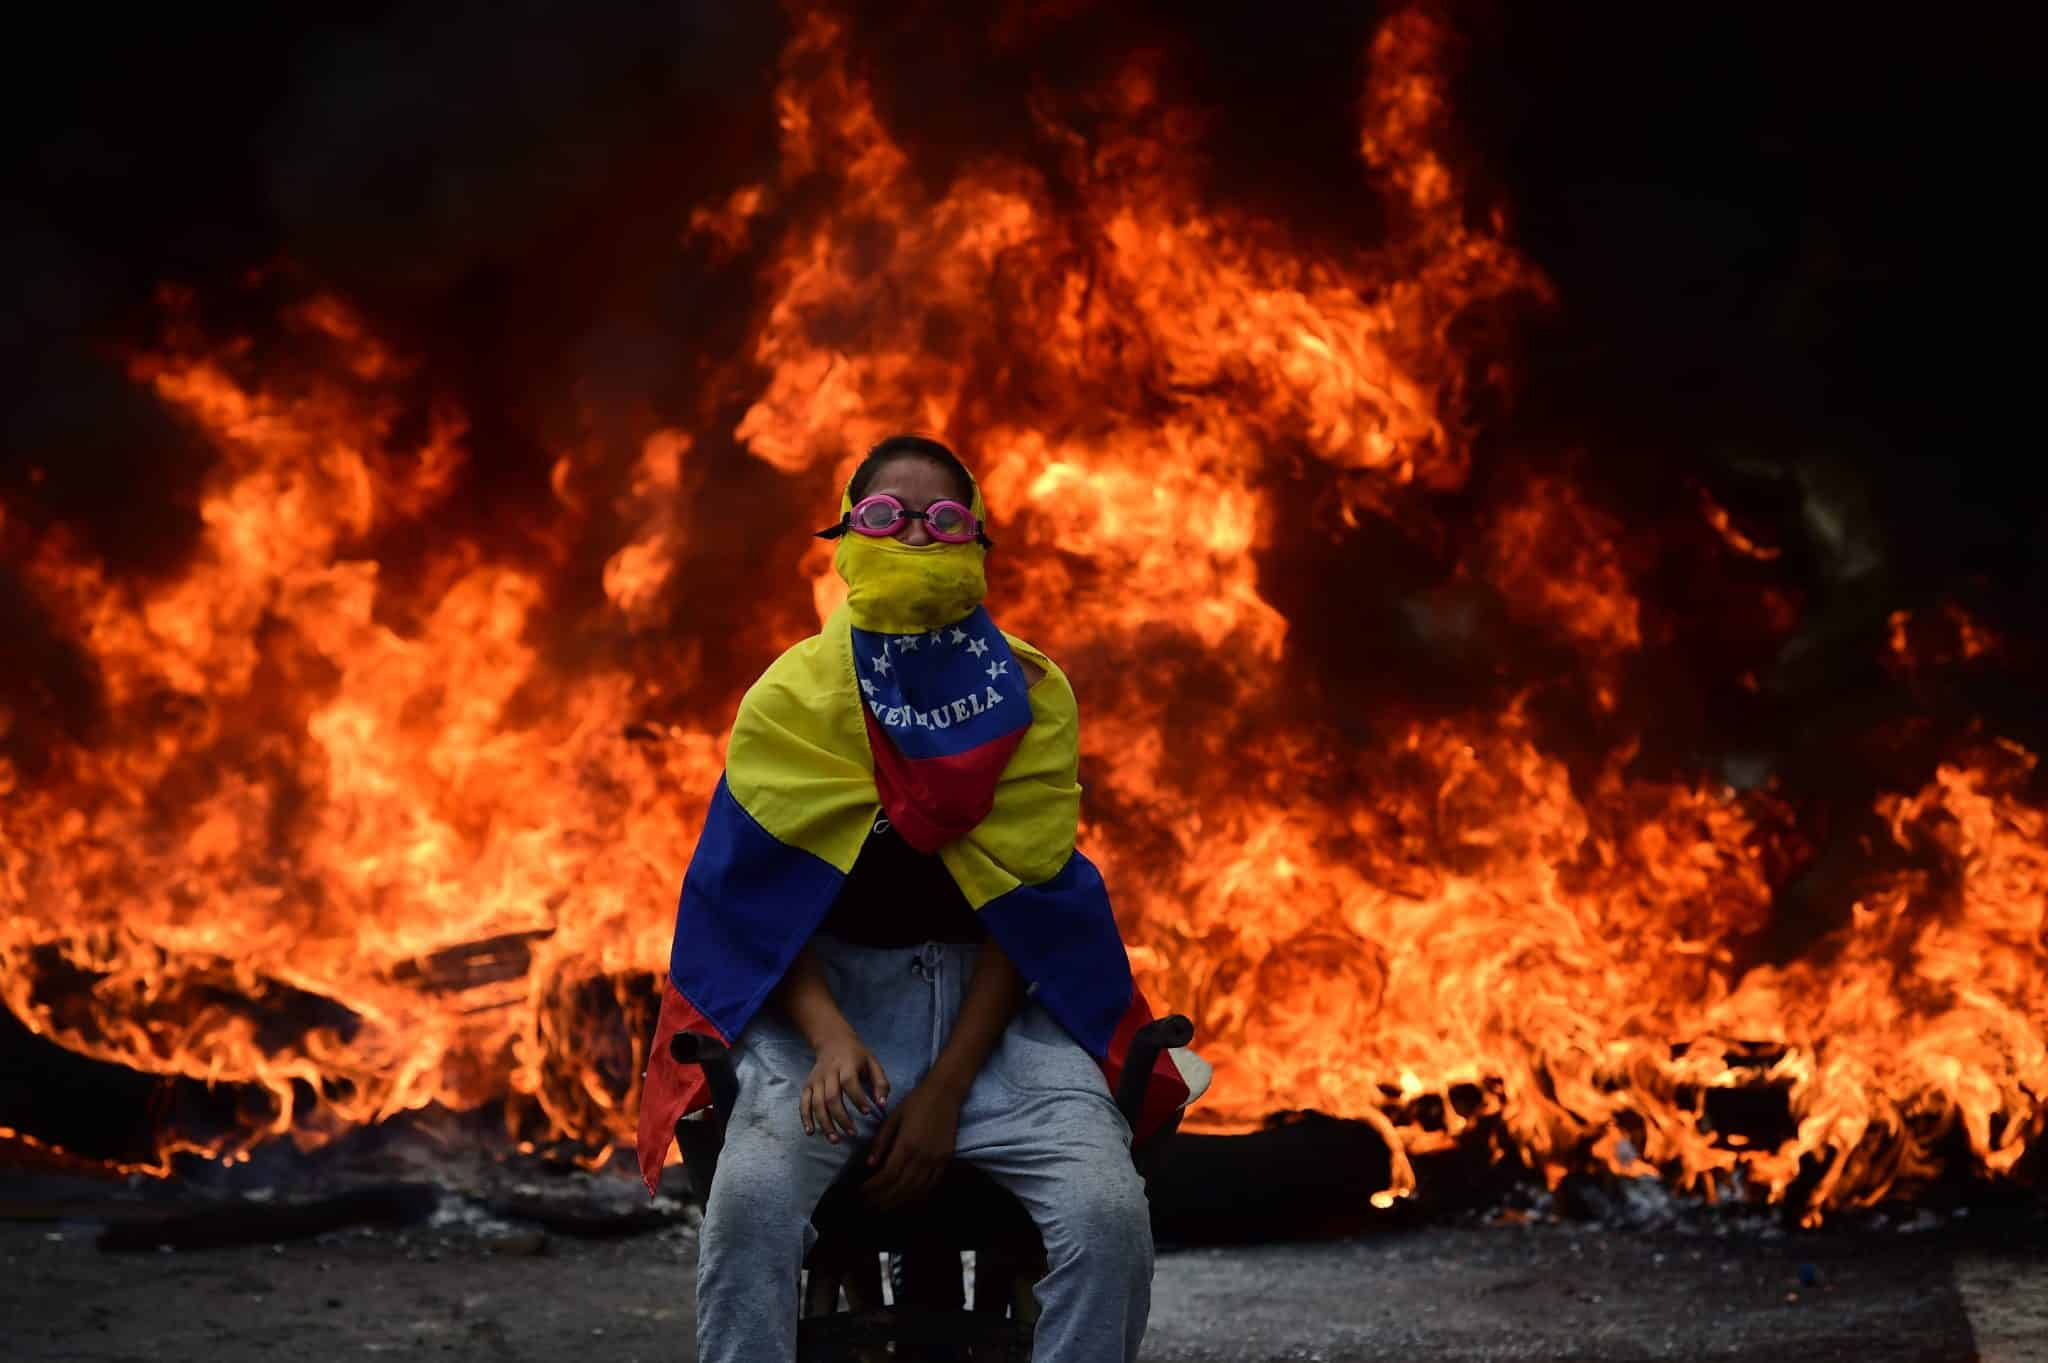 Is there a peaceful solution to Venezuelan crisis?